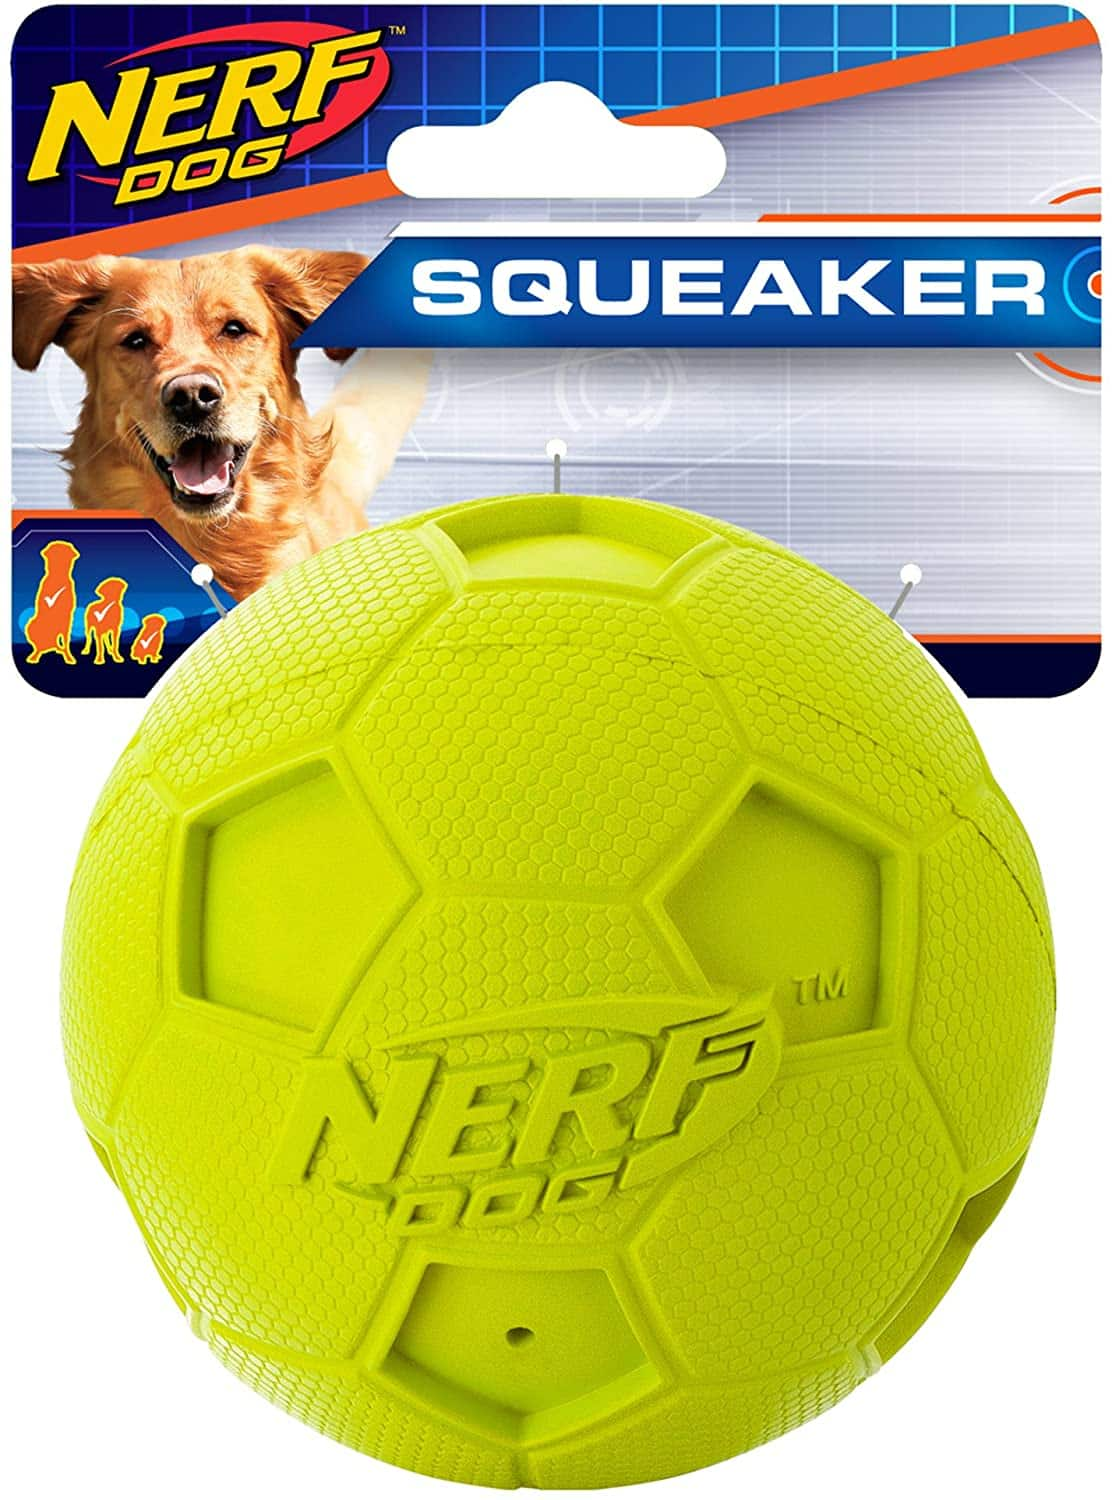 """Nerf Dog Soccer Squeak Ball Dog Toy (Green, 3.25"""") $1.50 + Free Shipping w/ Prime or $25+"""